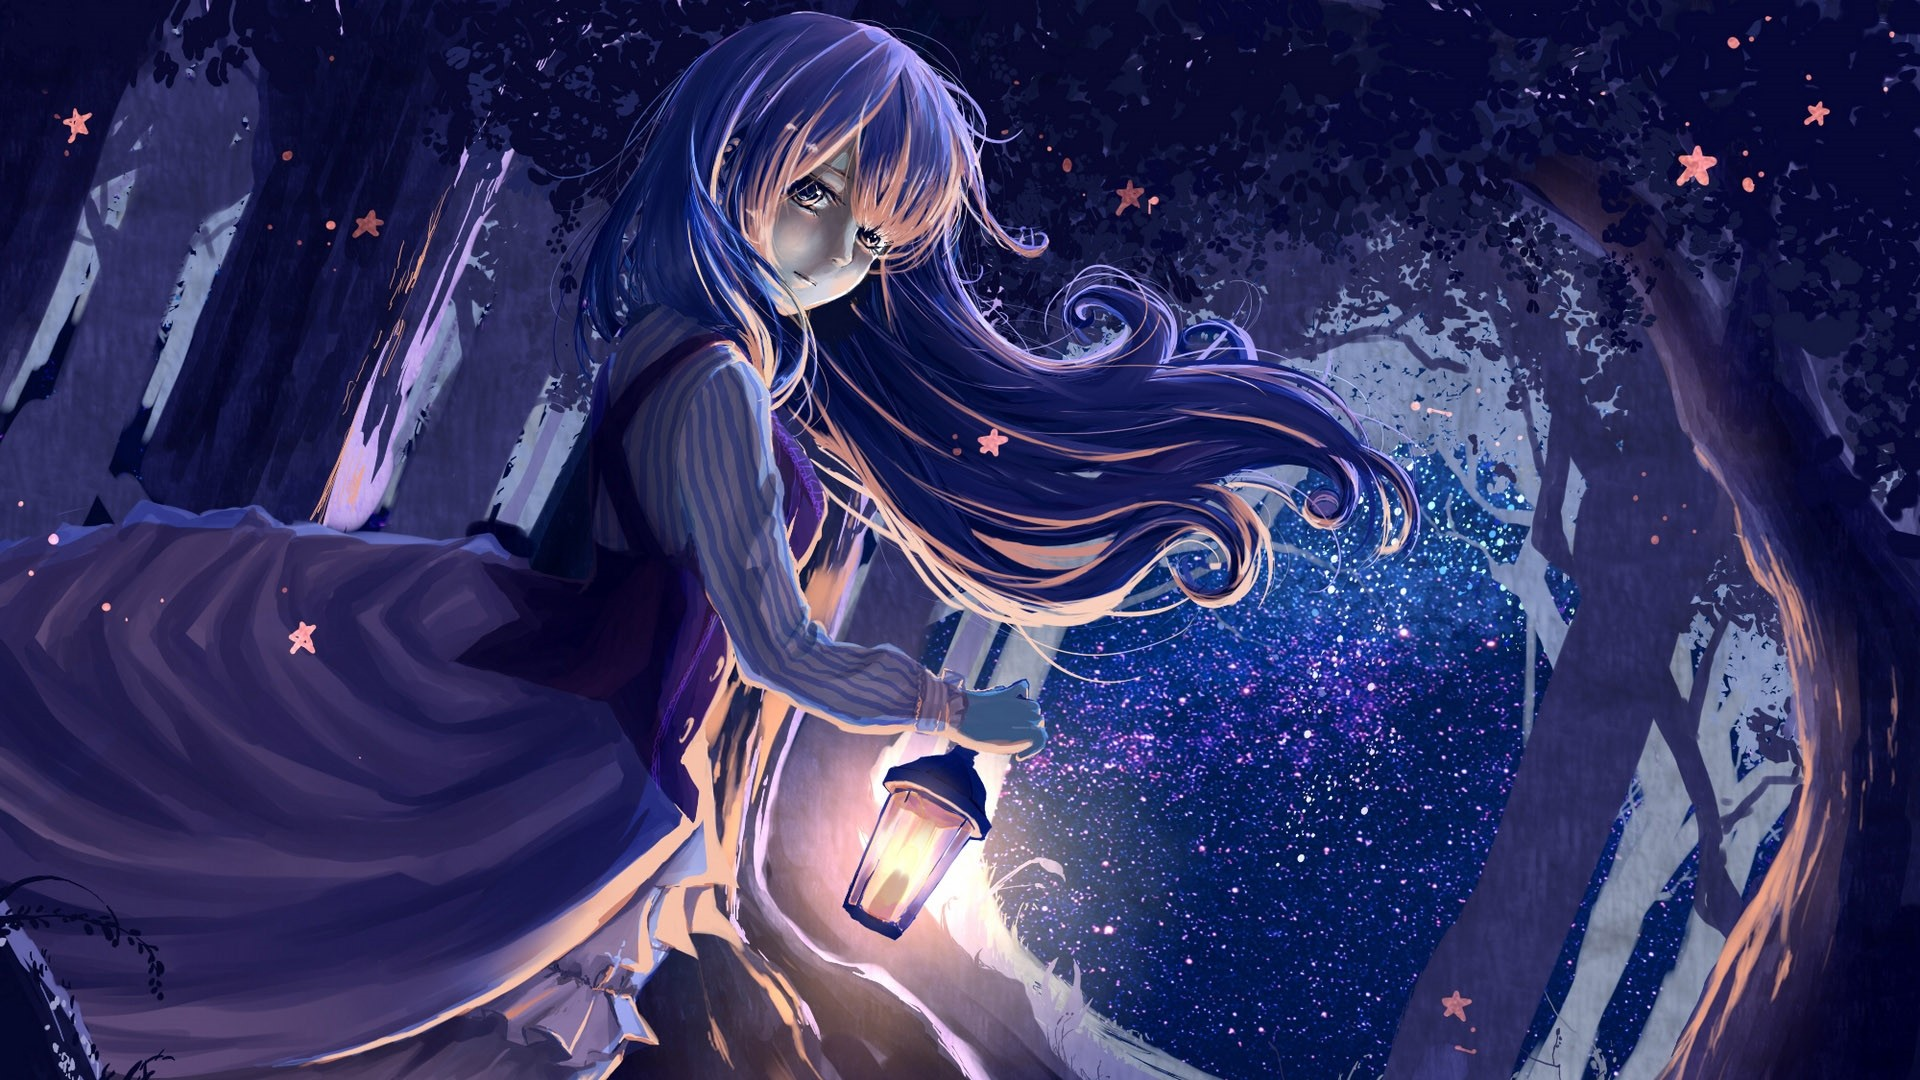 Night Anime Girl hd wallpaper download